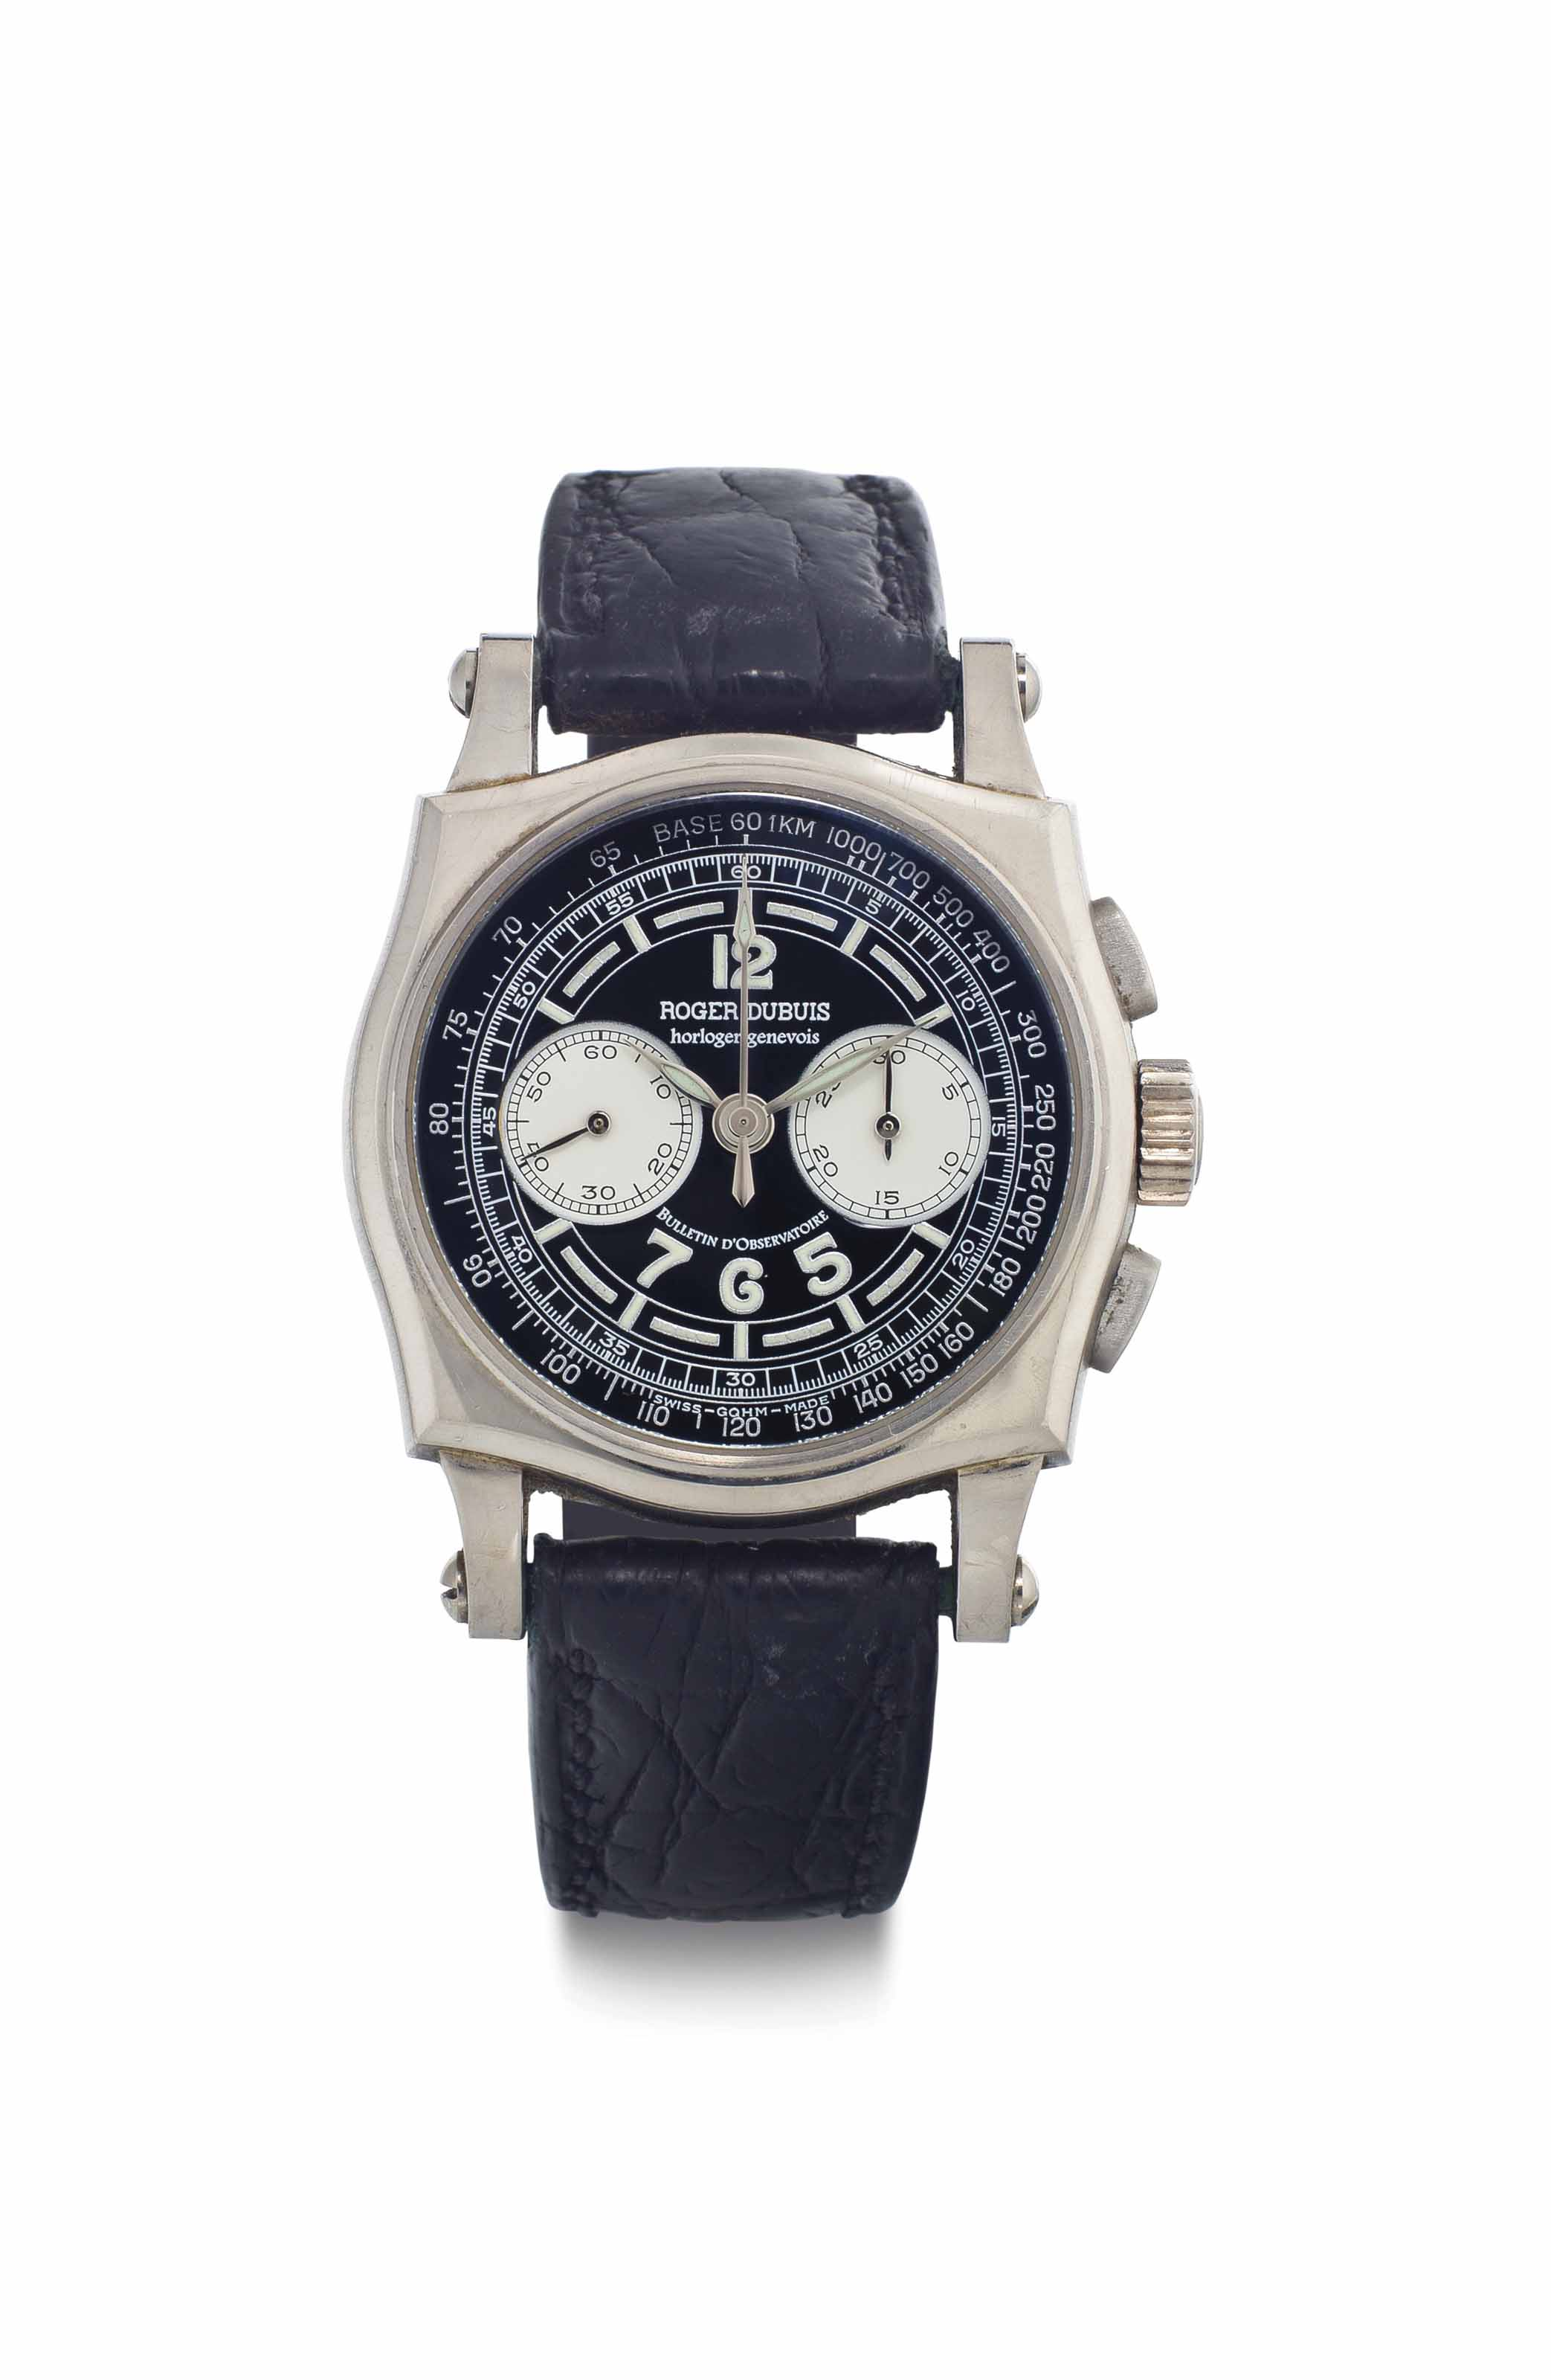 Roger Dubuis. An 18k White Gold Chronograph Wristwatch